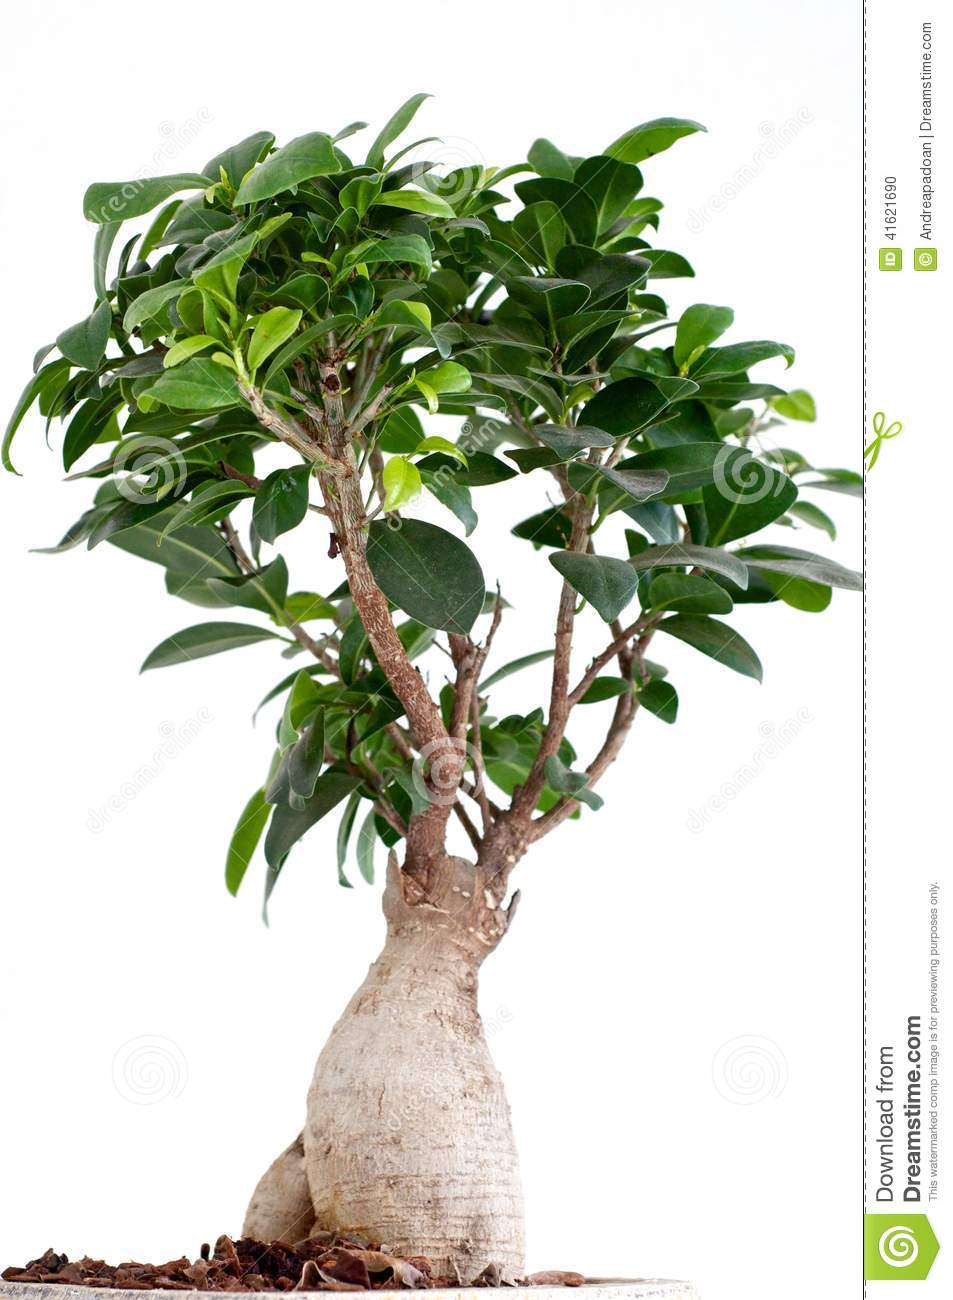 ficus ginseng bonsai stock photo image of giardino. Black Bedroom Furniture Sets. Home Design Ideas